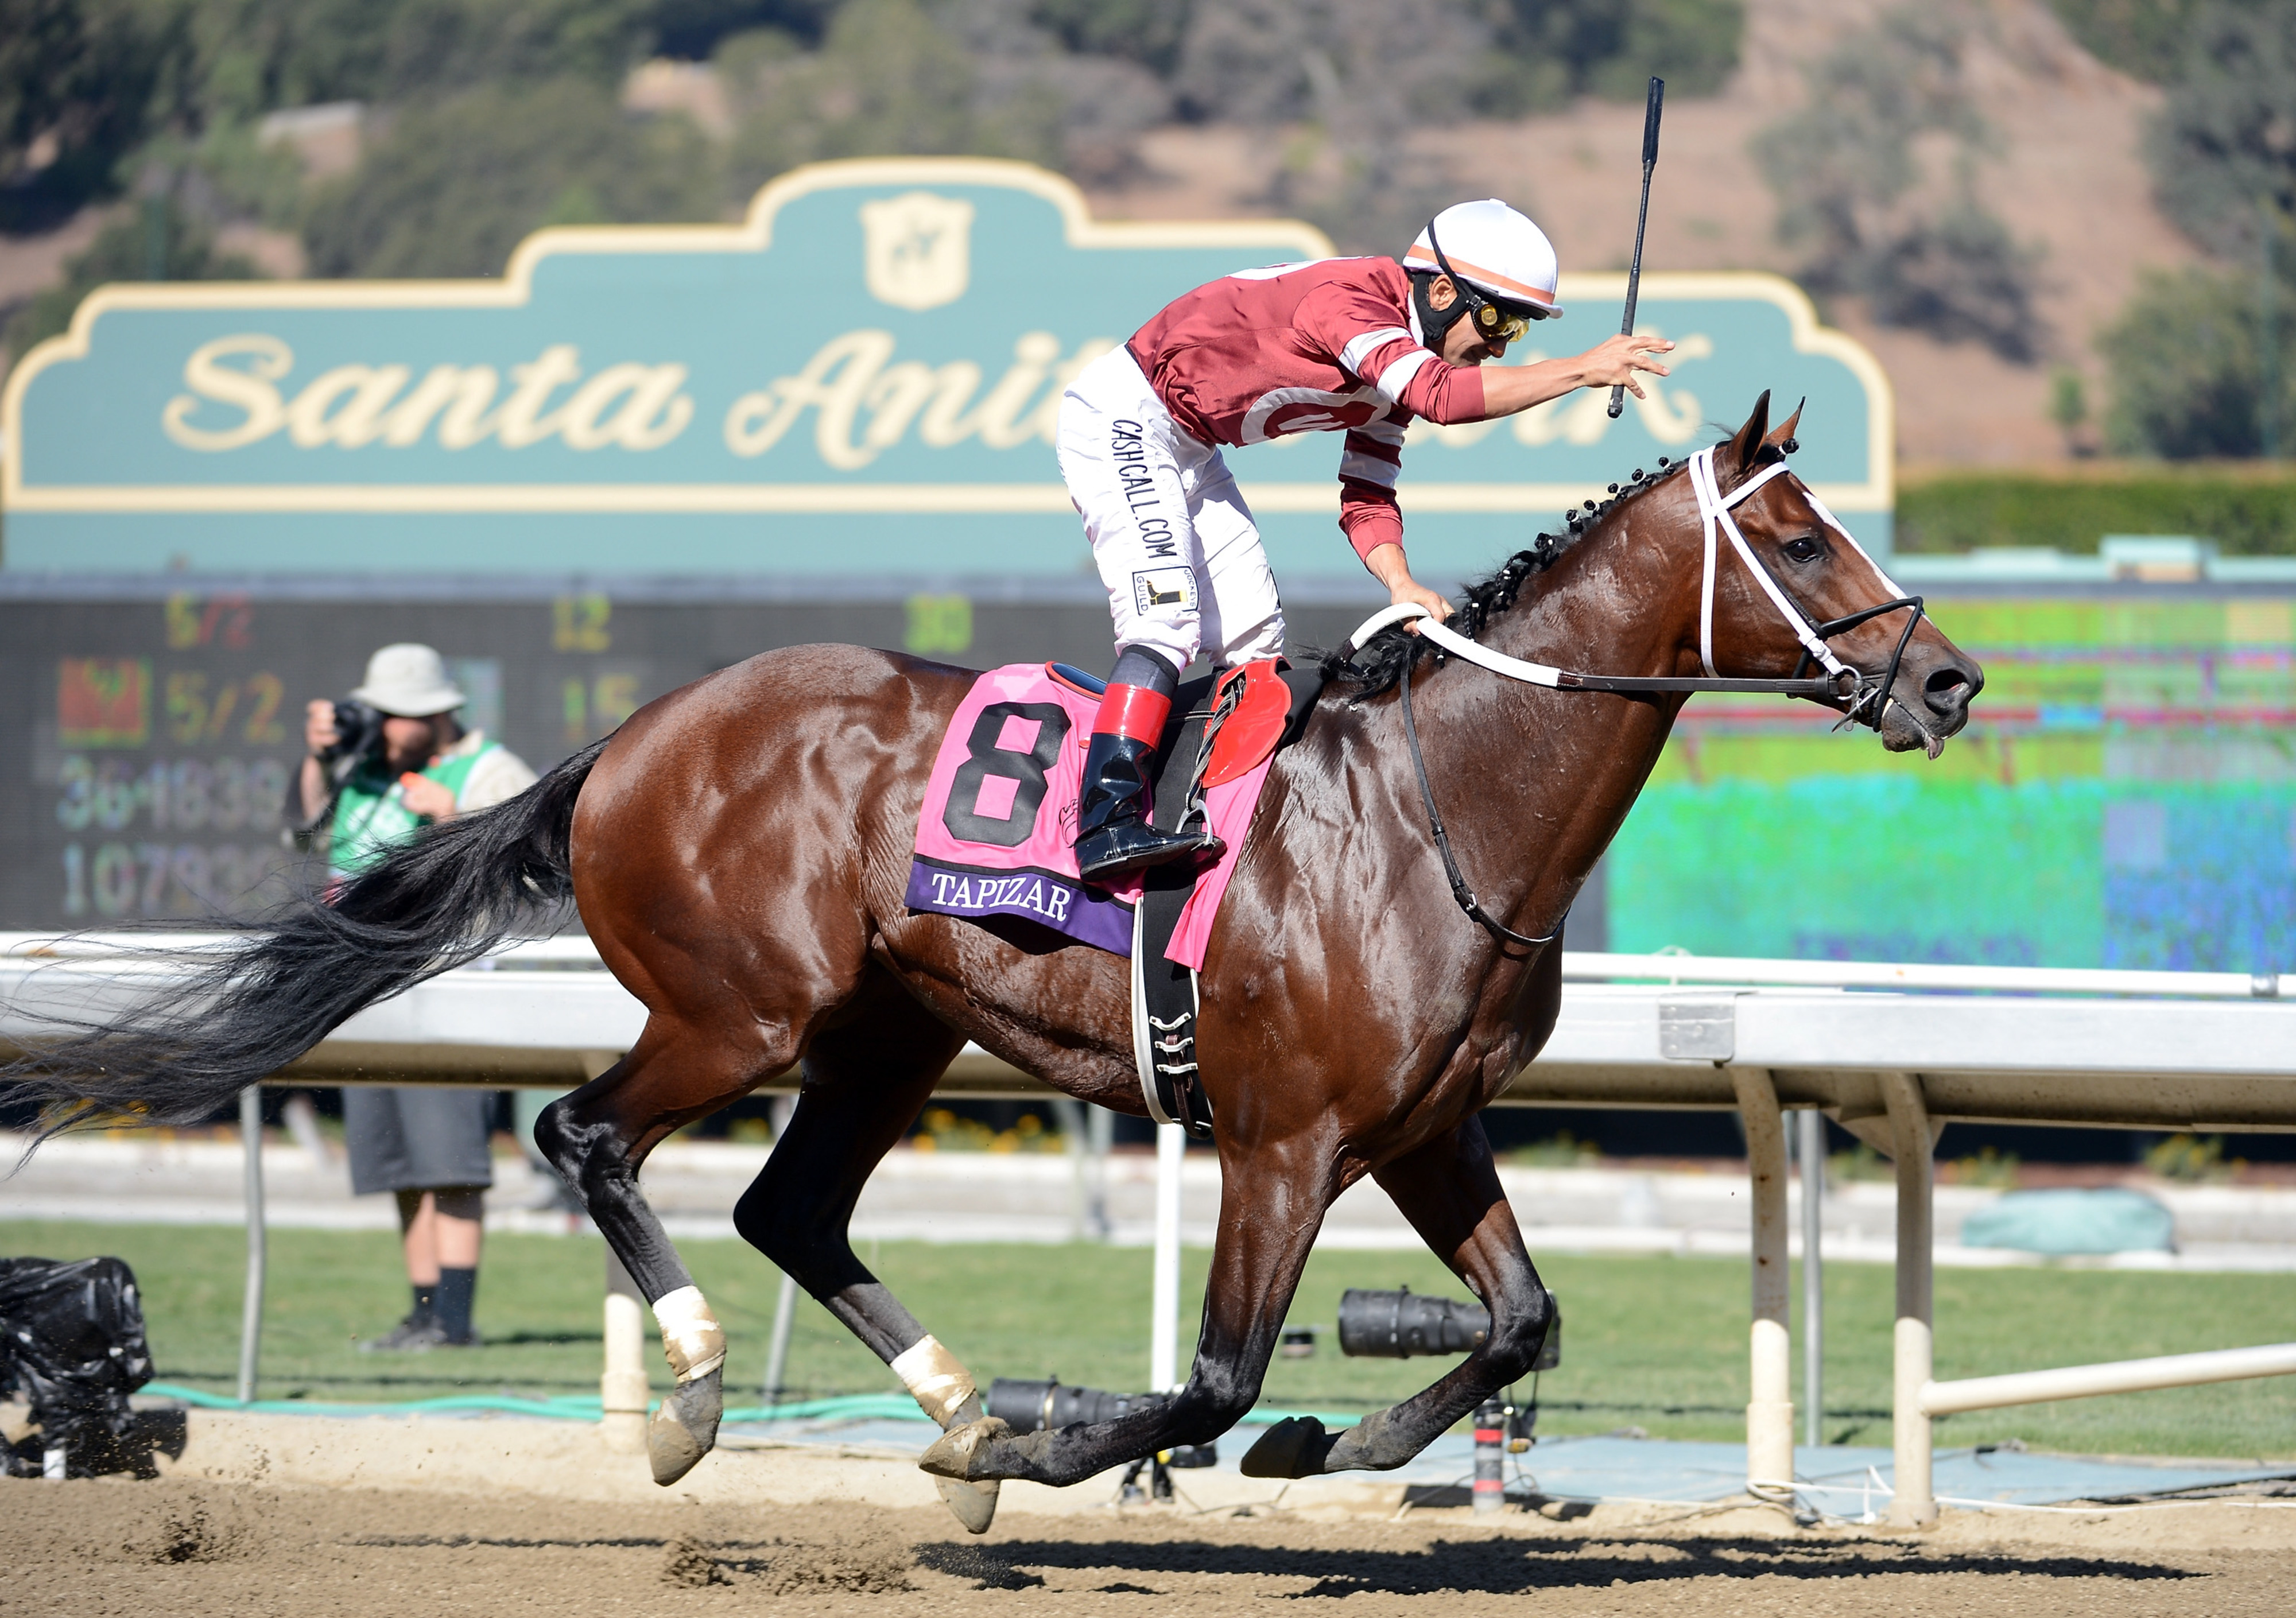 Tapizar won the 2012 Breeders' Cup Dirt Mile at odds of 15/1. What long shots await us in 2013?